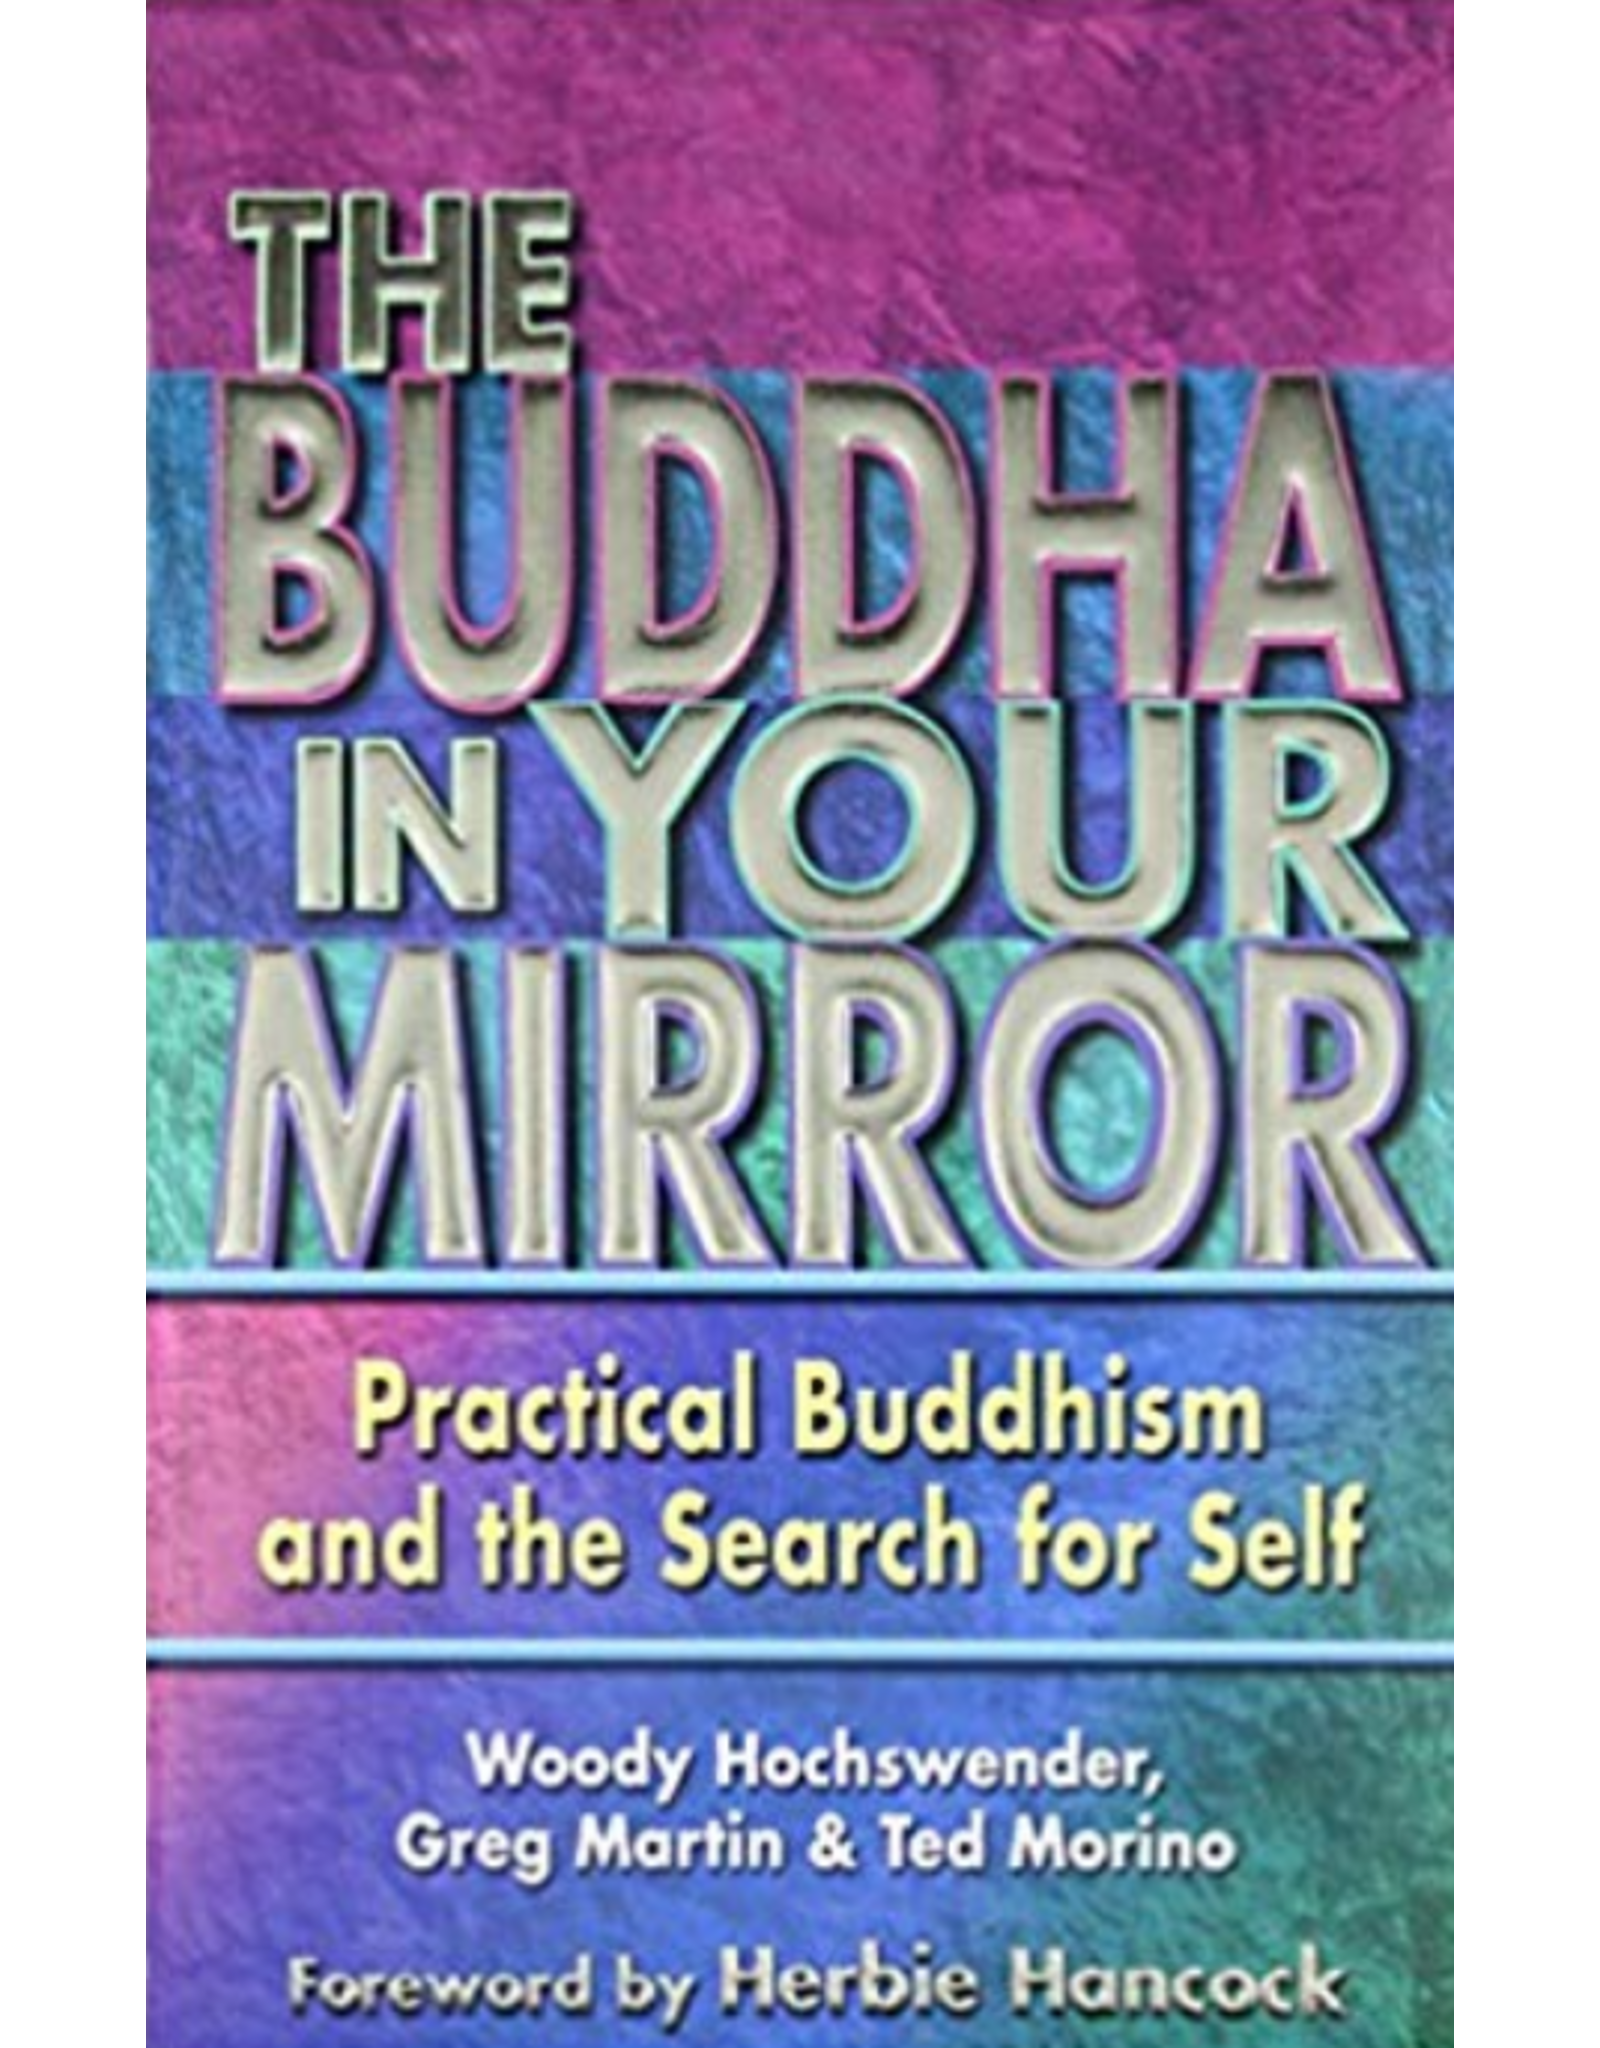 Buddha in Your Mirror